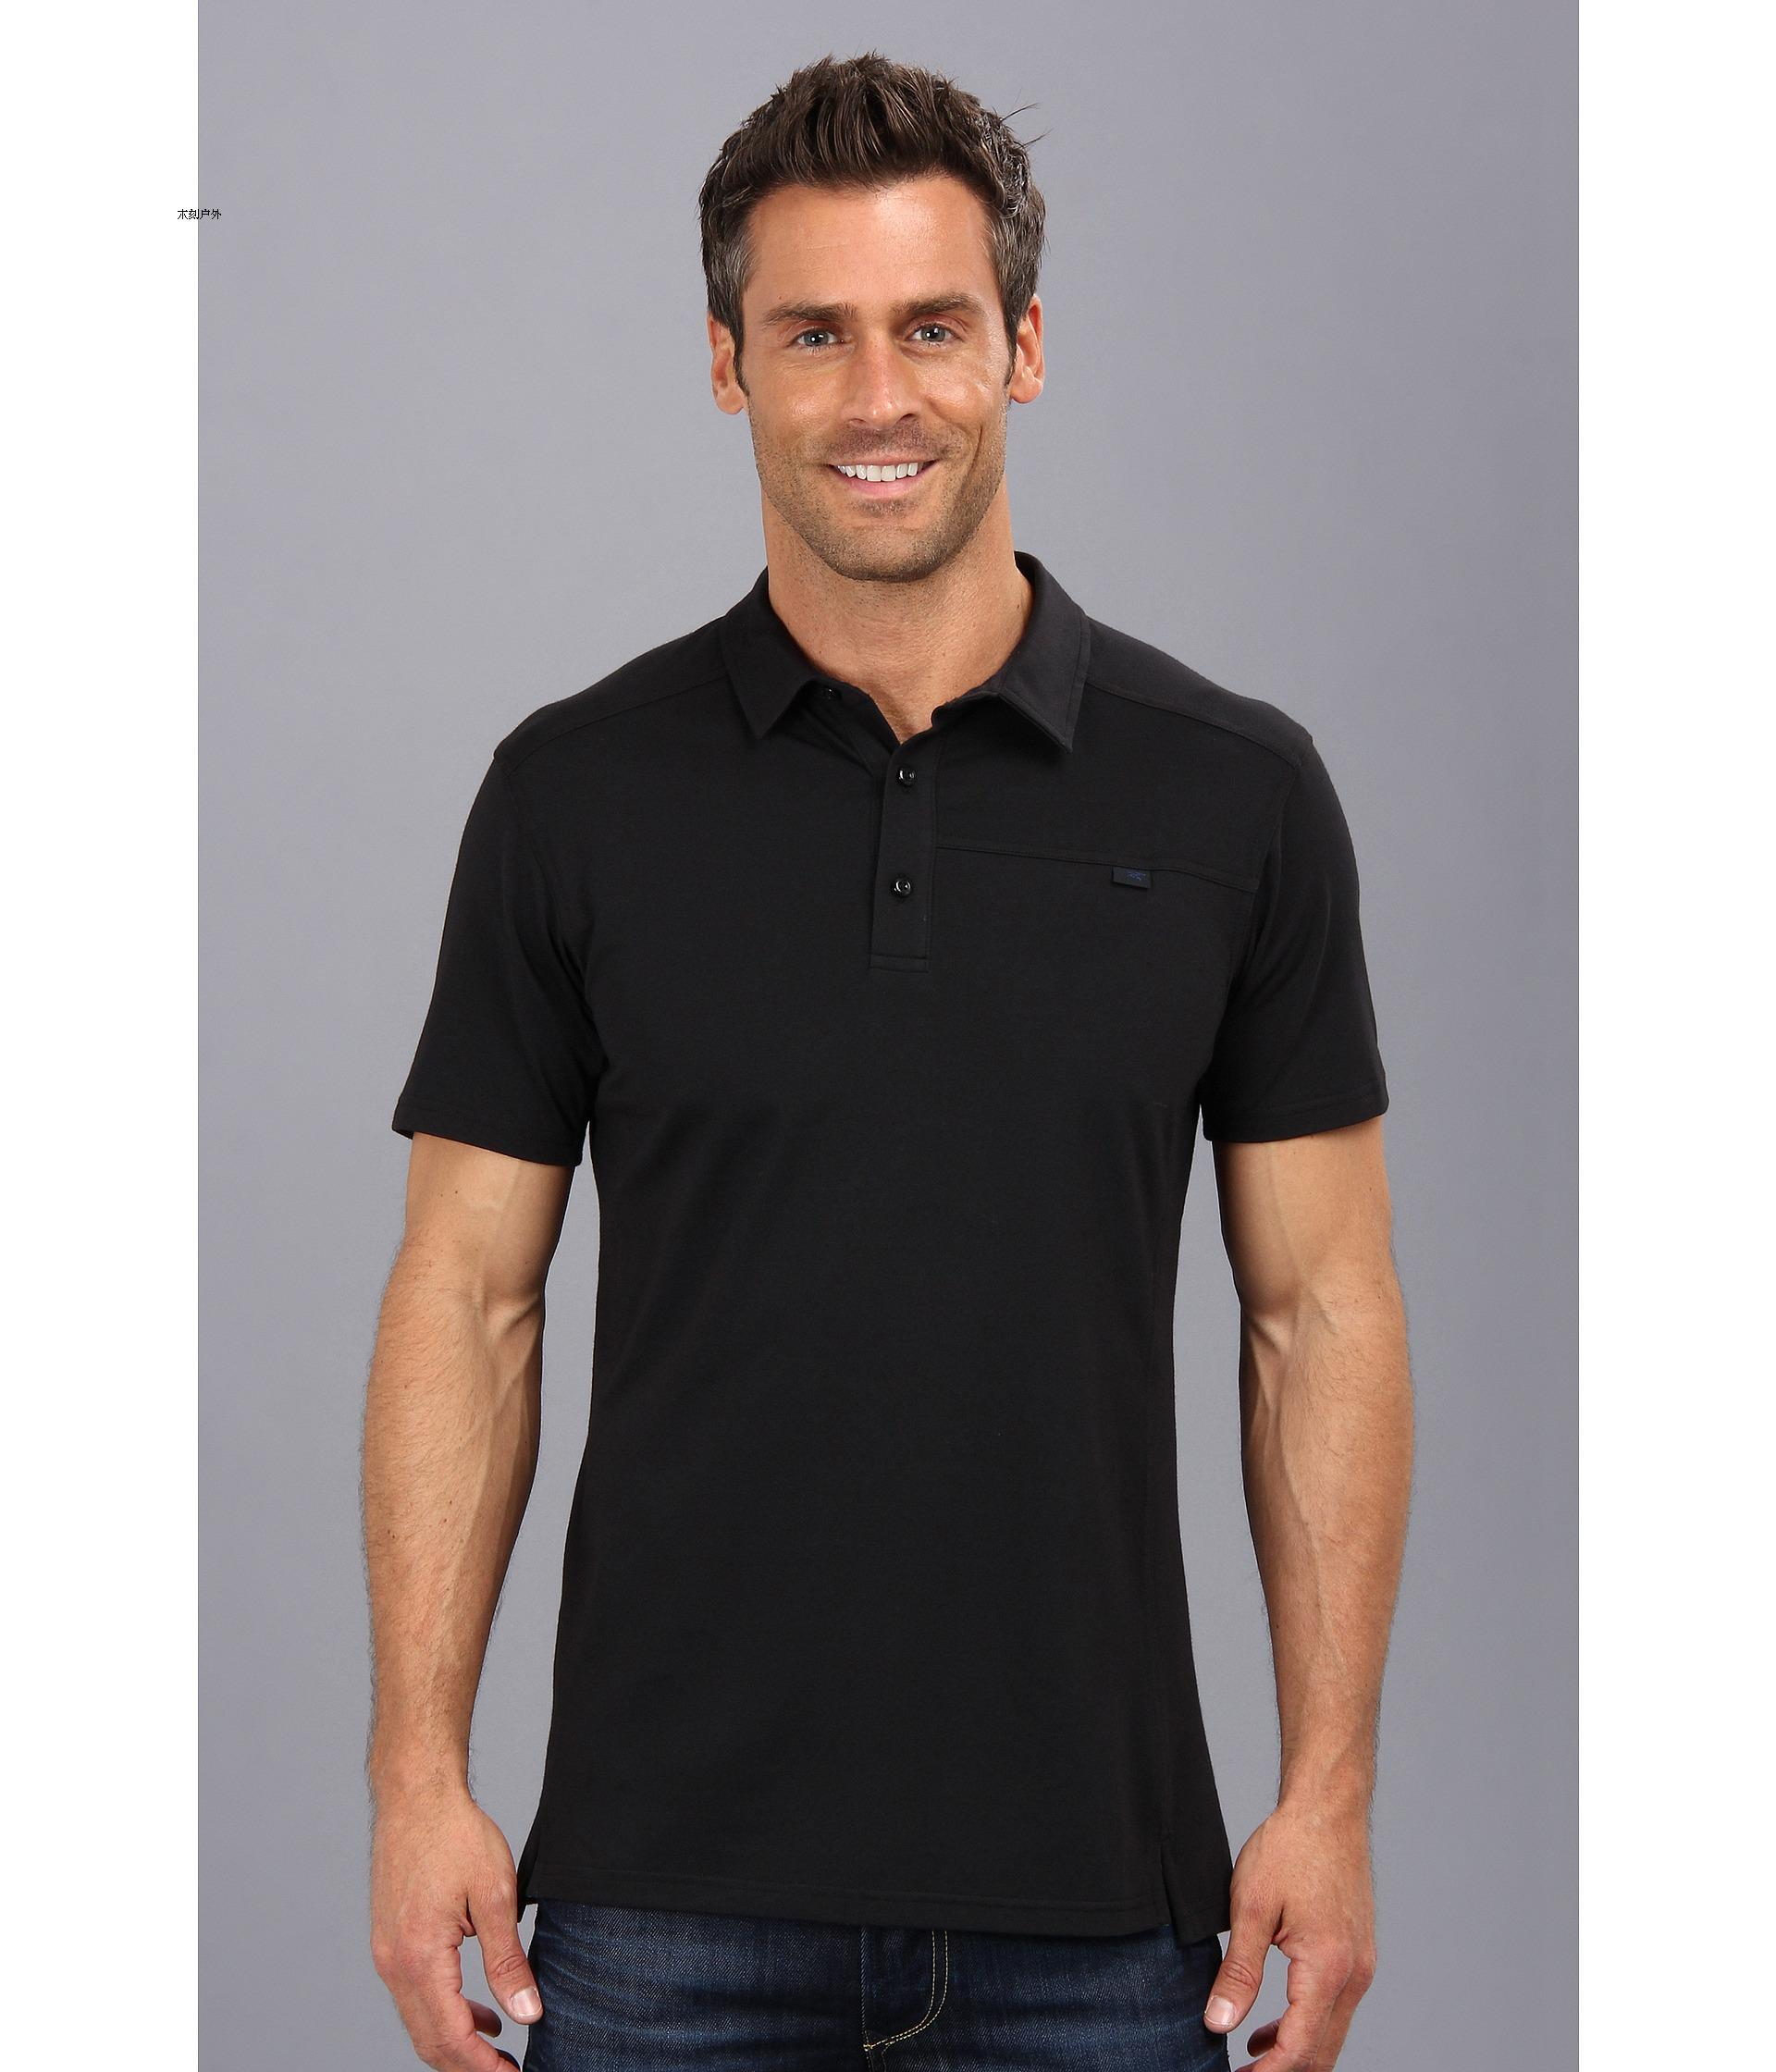 7debae87 Arc'teryx Archaeopteryx Captive Polo SS classic Polo shirt quick-dry  compassionate 14450